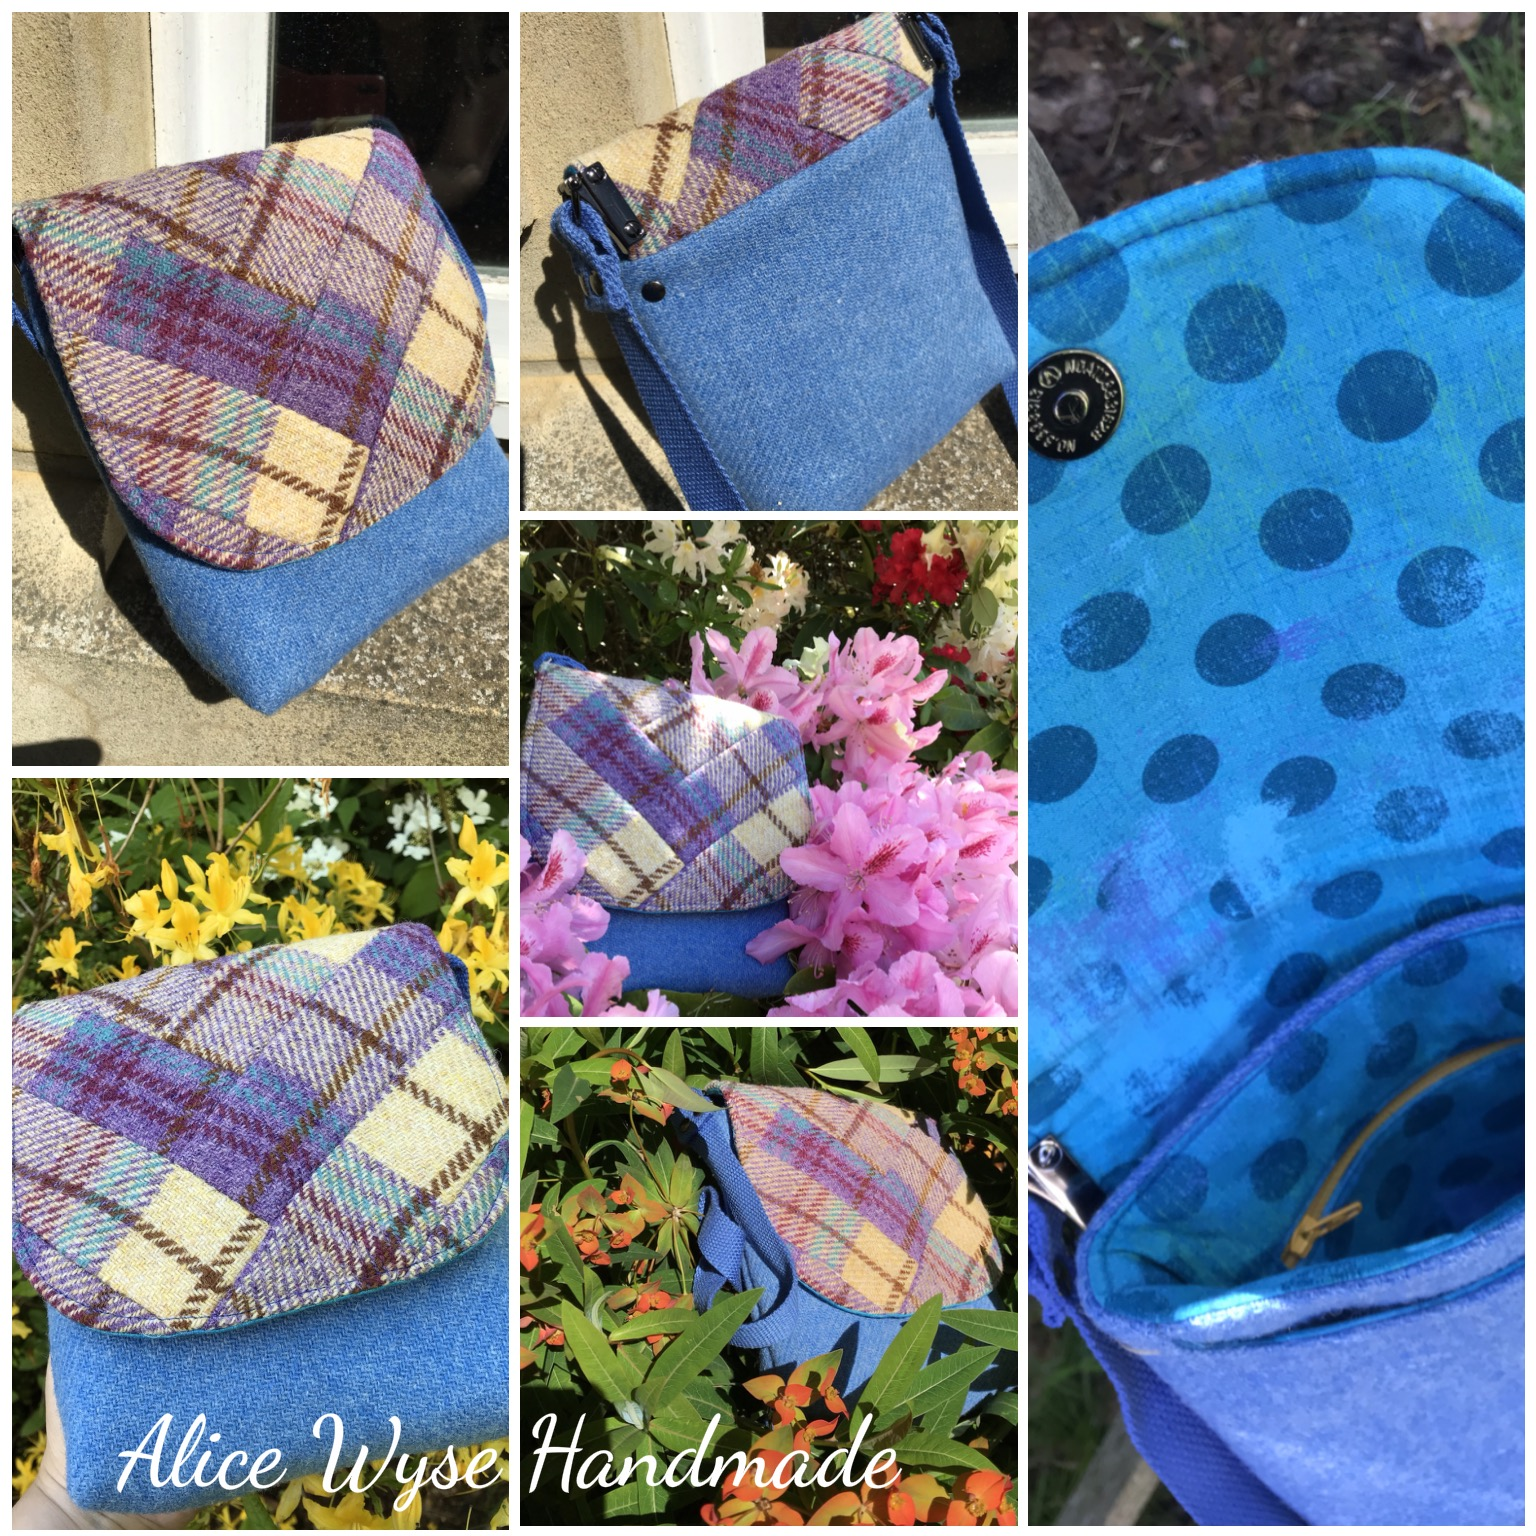 The Crossbody Bag by Sewing Patterns by Mrs H, made by Alice Wyse Handmade